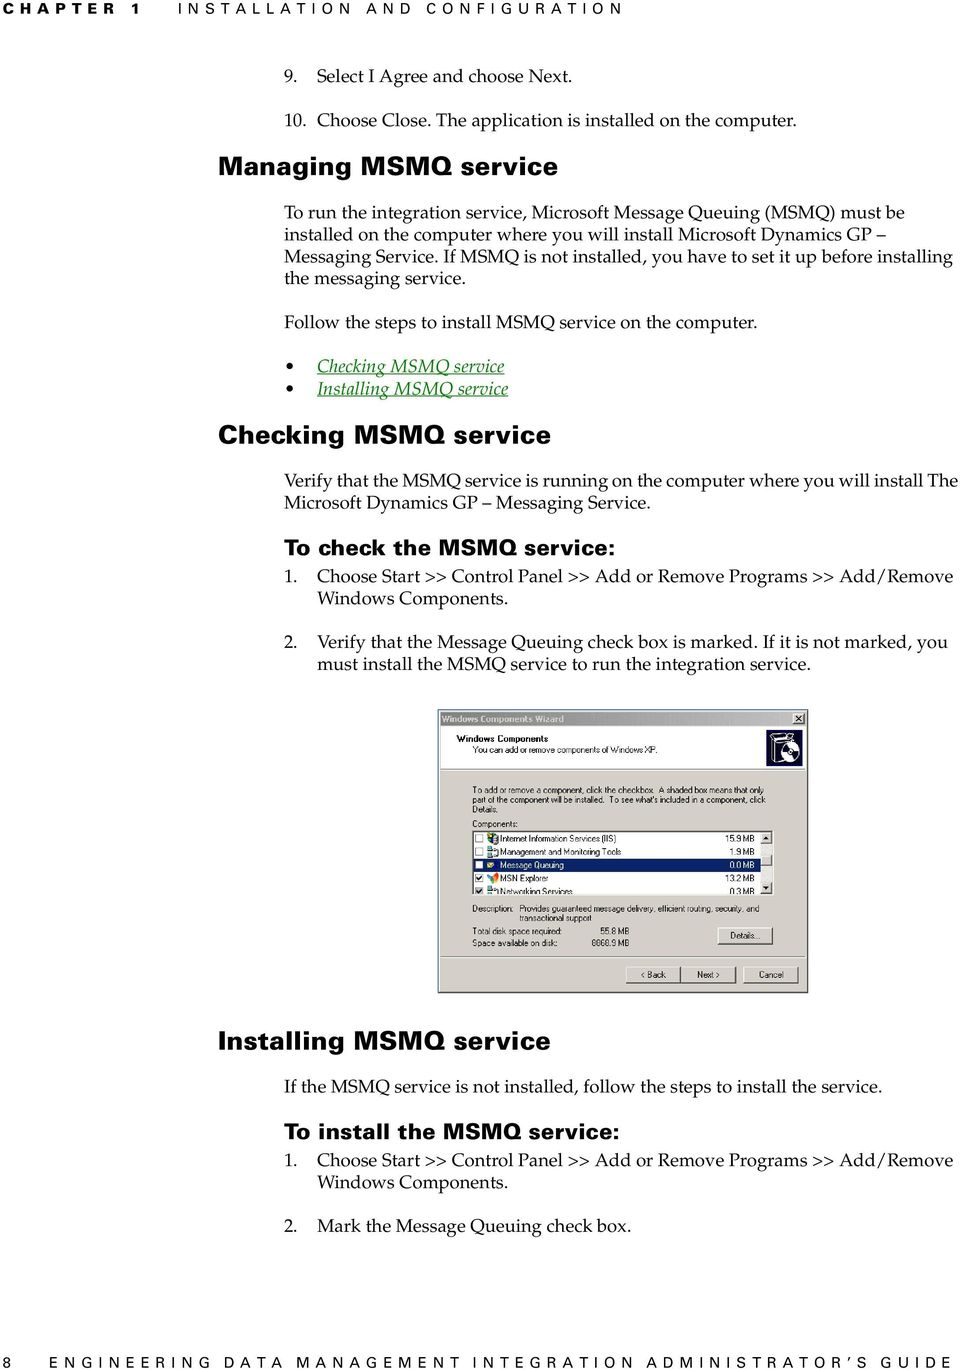 If MSMQ is not installed, you have to set it up before installing the messaging service. Follow the steps to install MSMQ service on the computer.